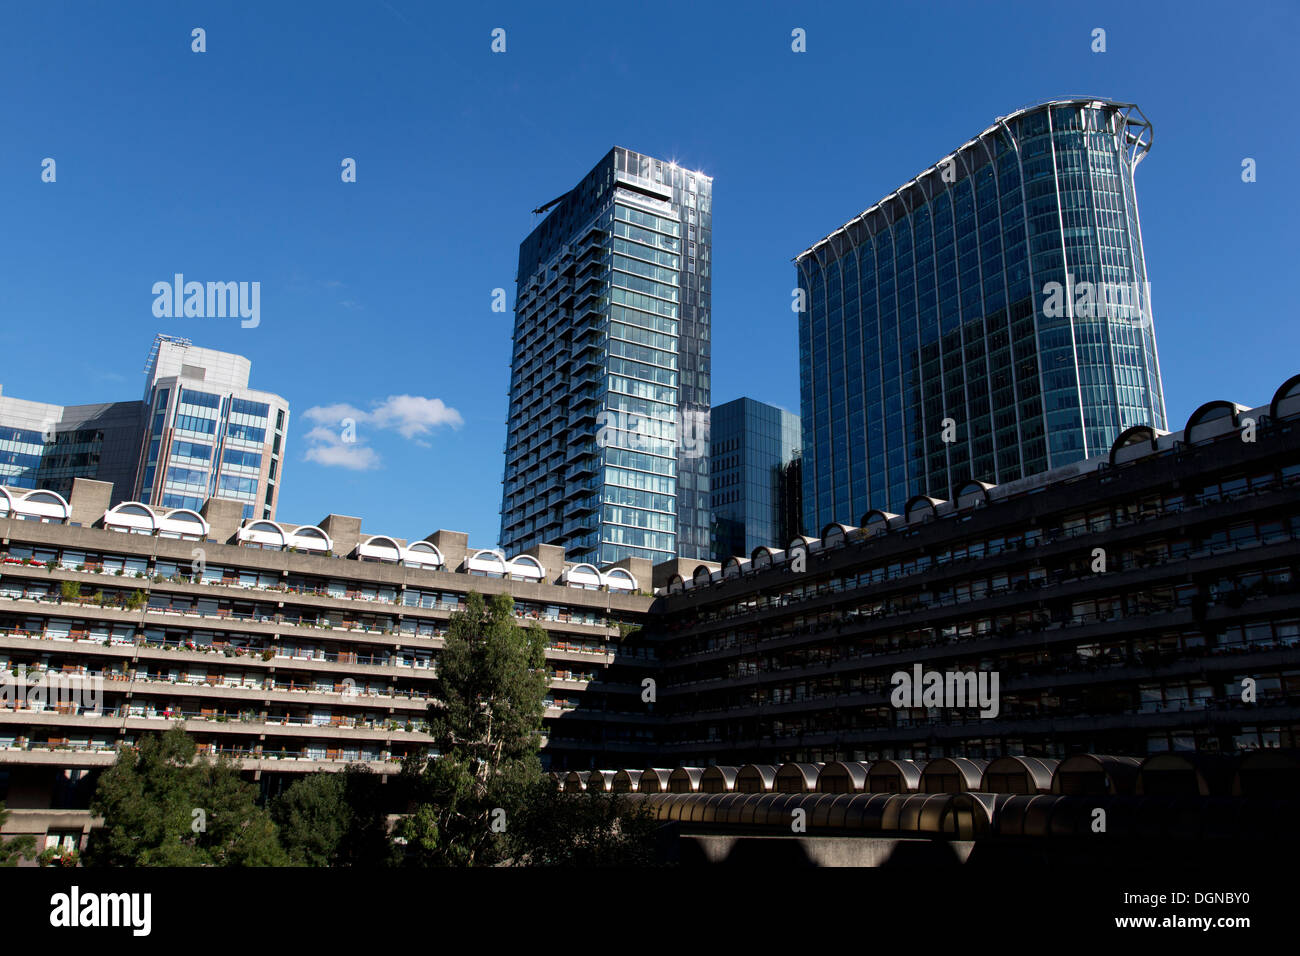 Speed & Brandon House (front), Apartment block, Barbican Centre, with The Heron (middle) & CityPoint (Right), London, UK. - Stock Image